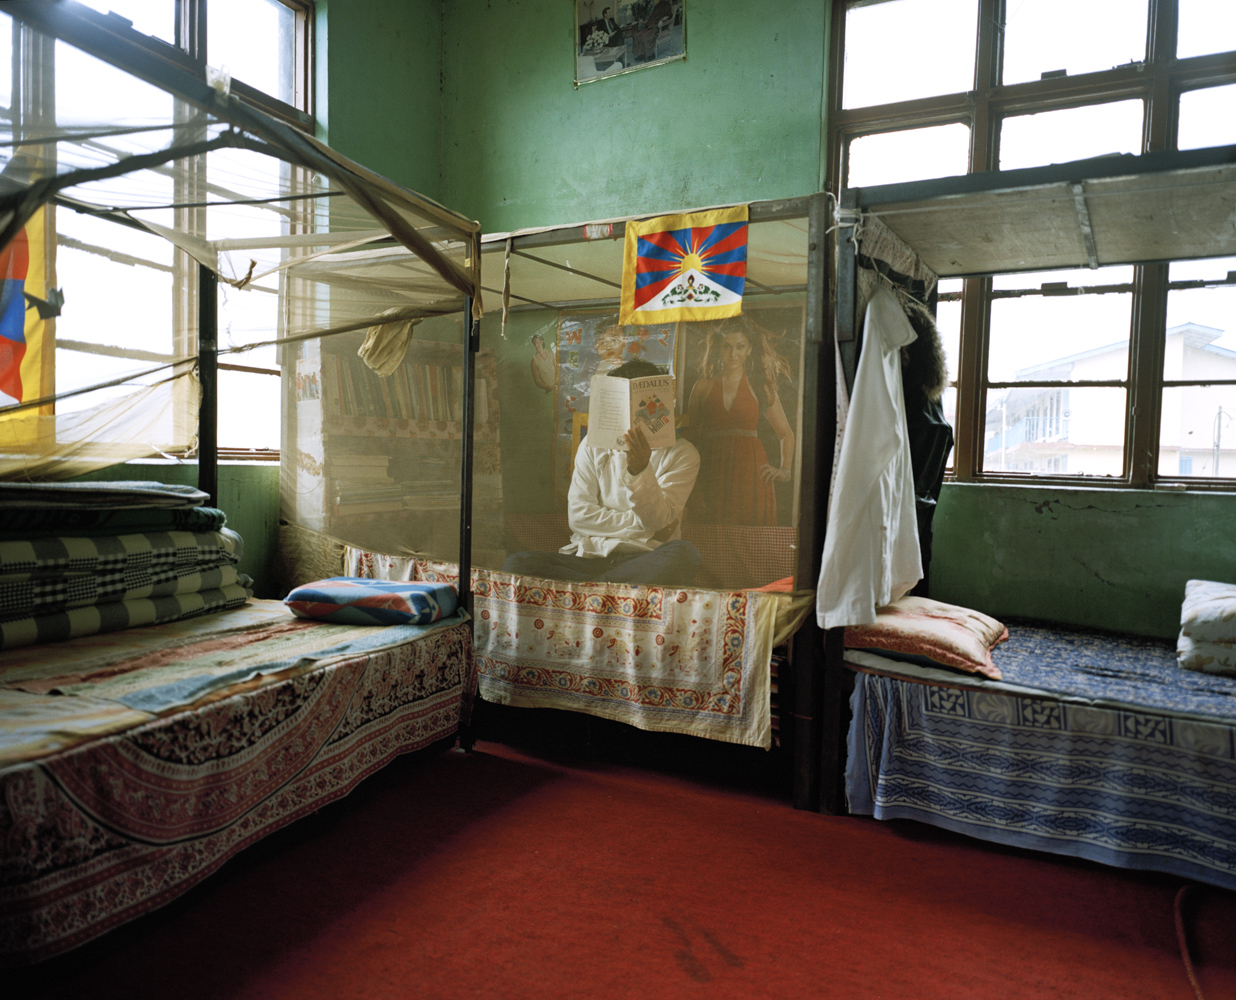 A student conceals his face on his bed inside the men's dormitory at the Tibetan Transit School.